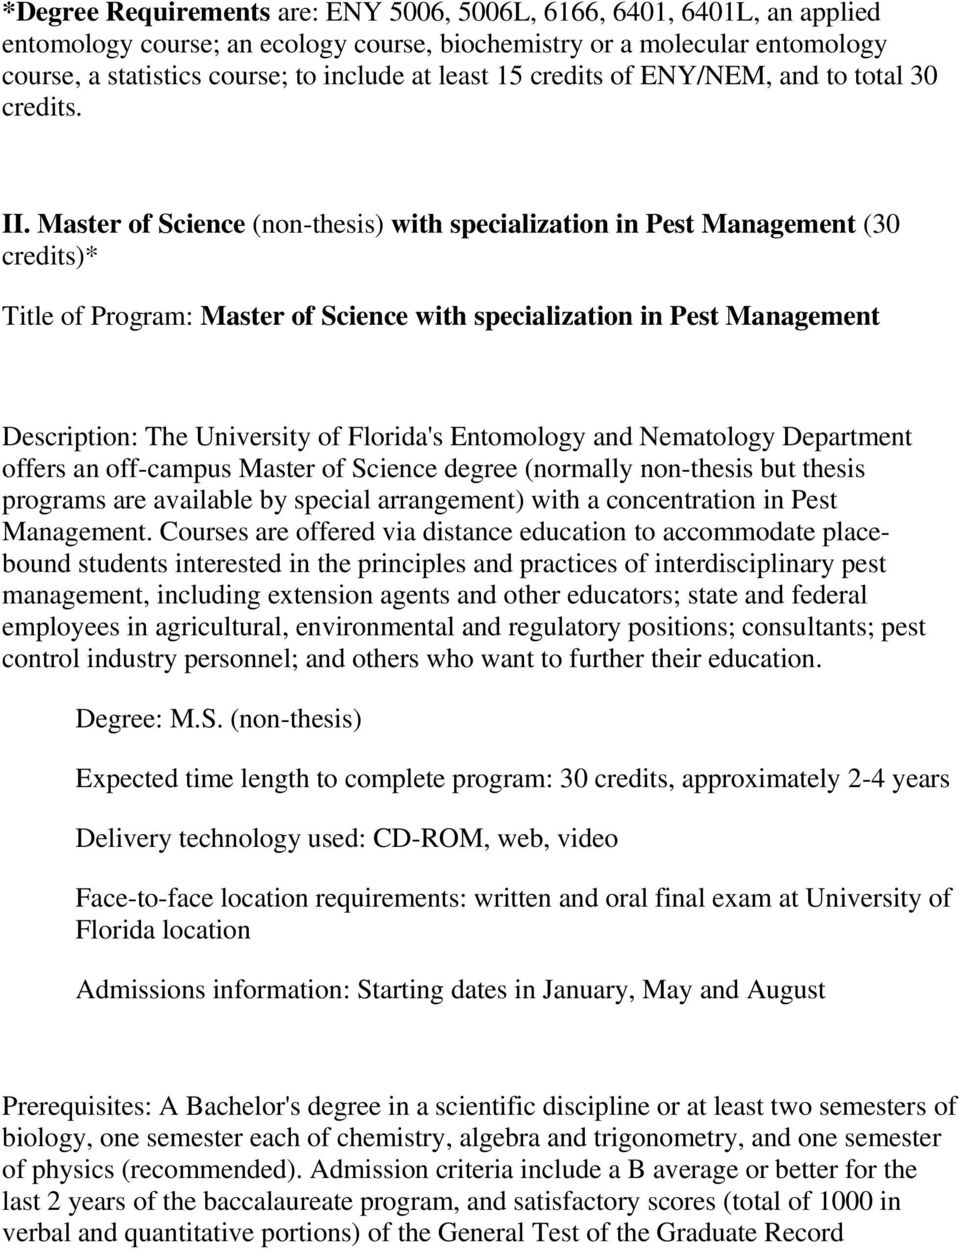 Master of Science (non-thesis) with specialization in Pest Management (30 credits)* Title of Program: Master of Science with specialization in Pest Management Description: The University of Florida's